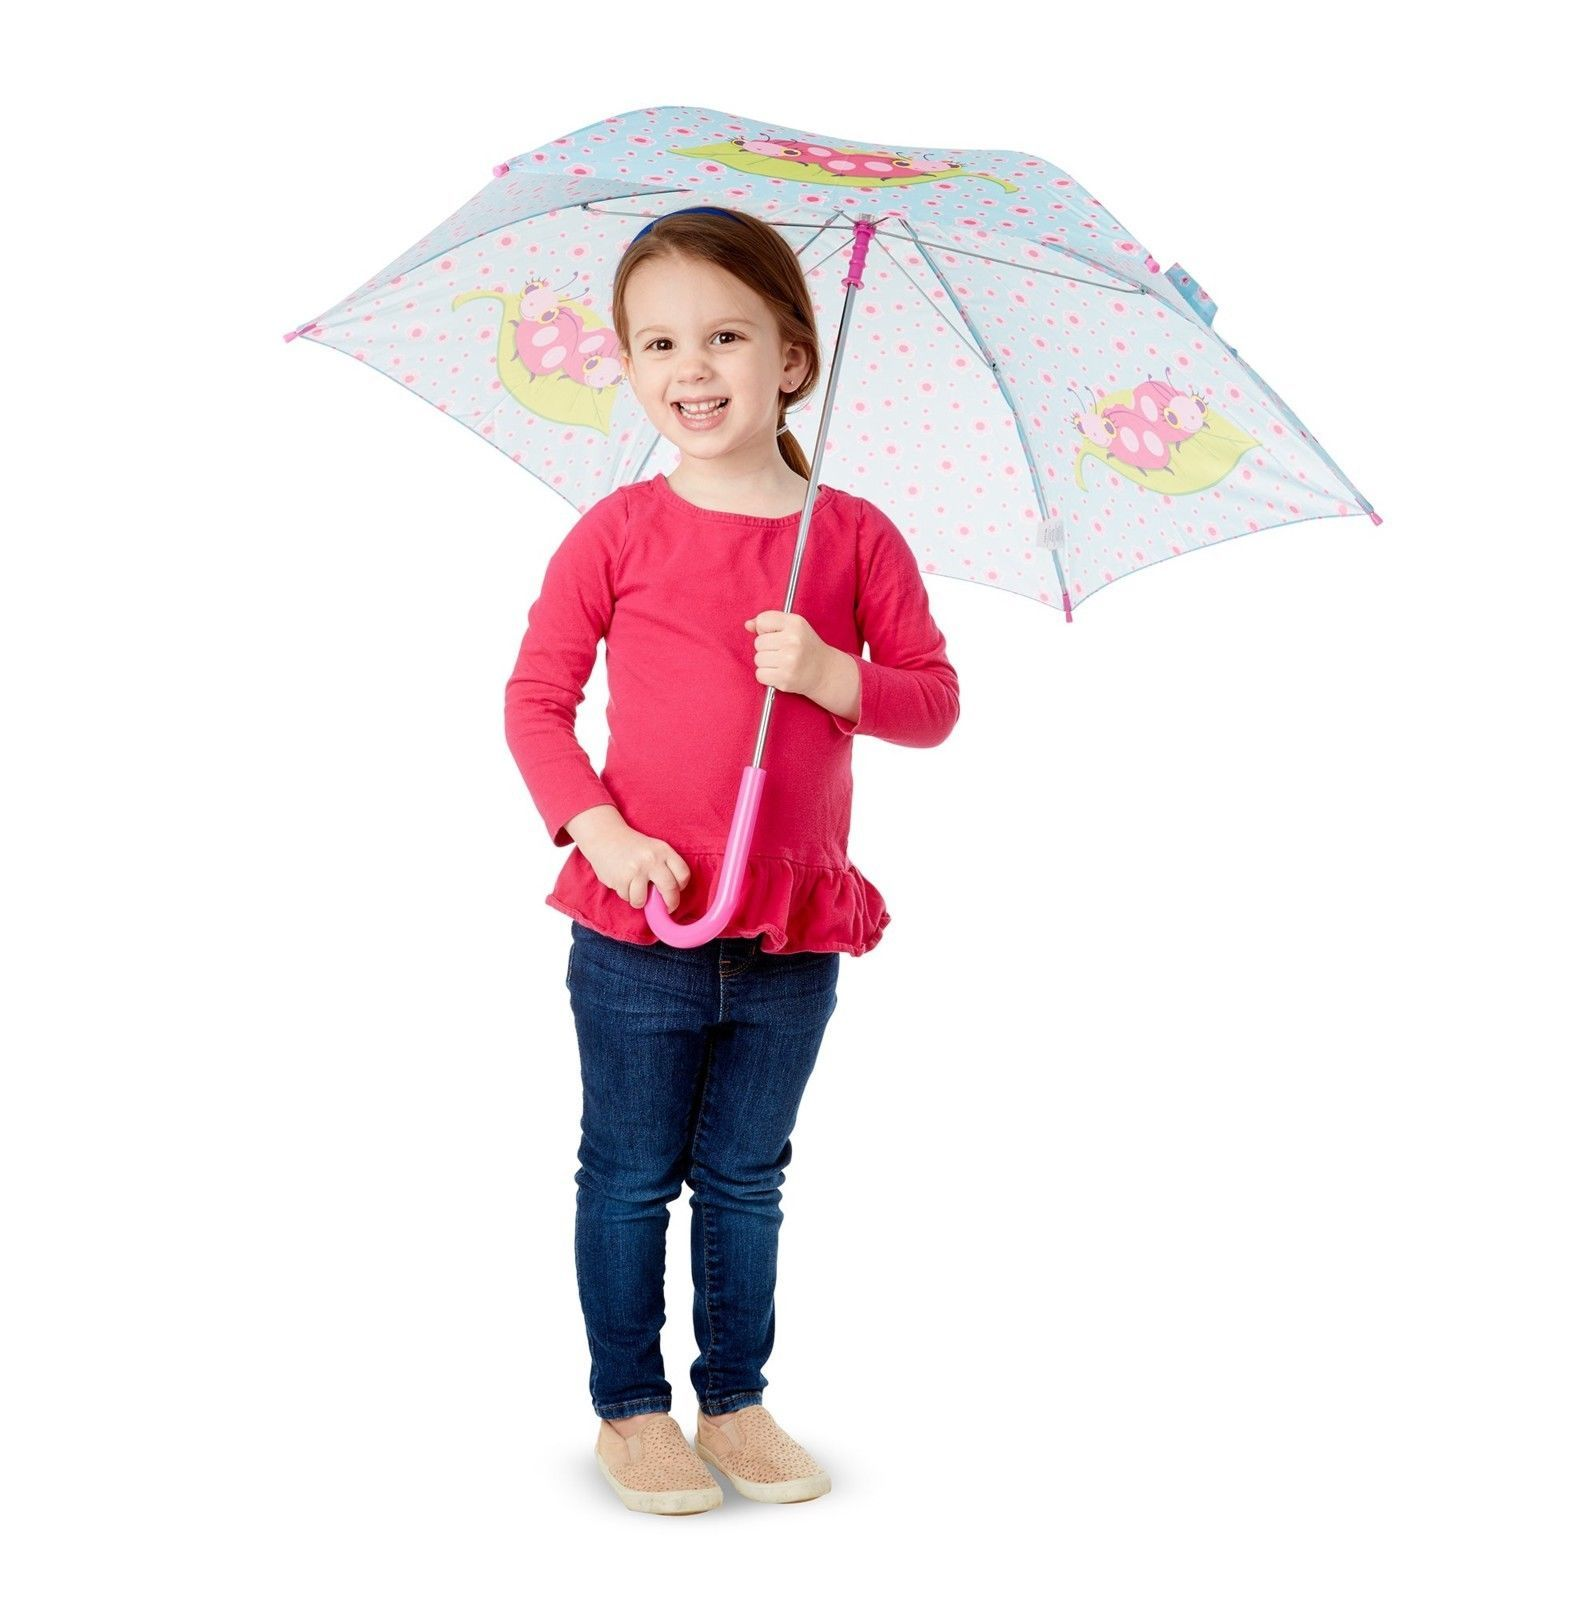 Melissa Doug Trixie Ladybug Umbrella for Kids With Safety Open and Close